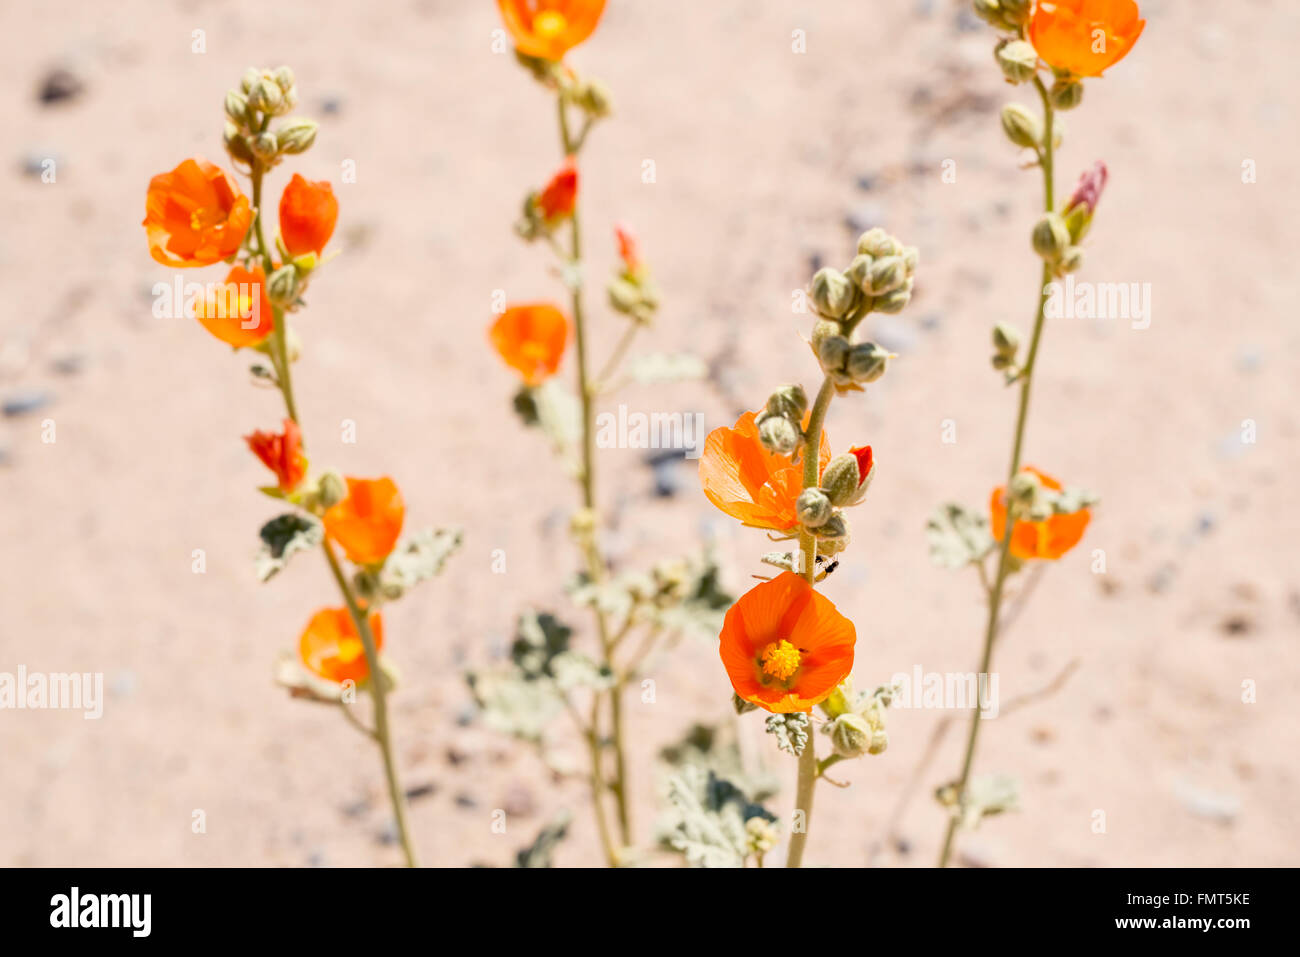 Desert Mallow (Sphaeralcea ambigua) blooming in Eureka Valley, Death Valley National Park, California - Stock Image